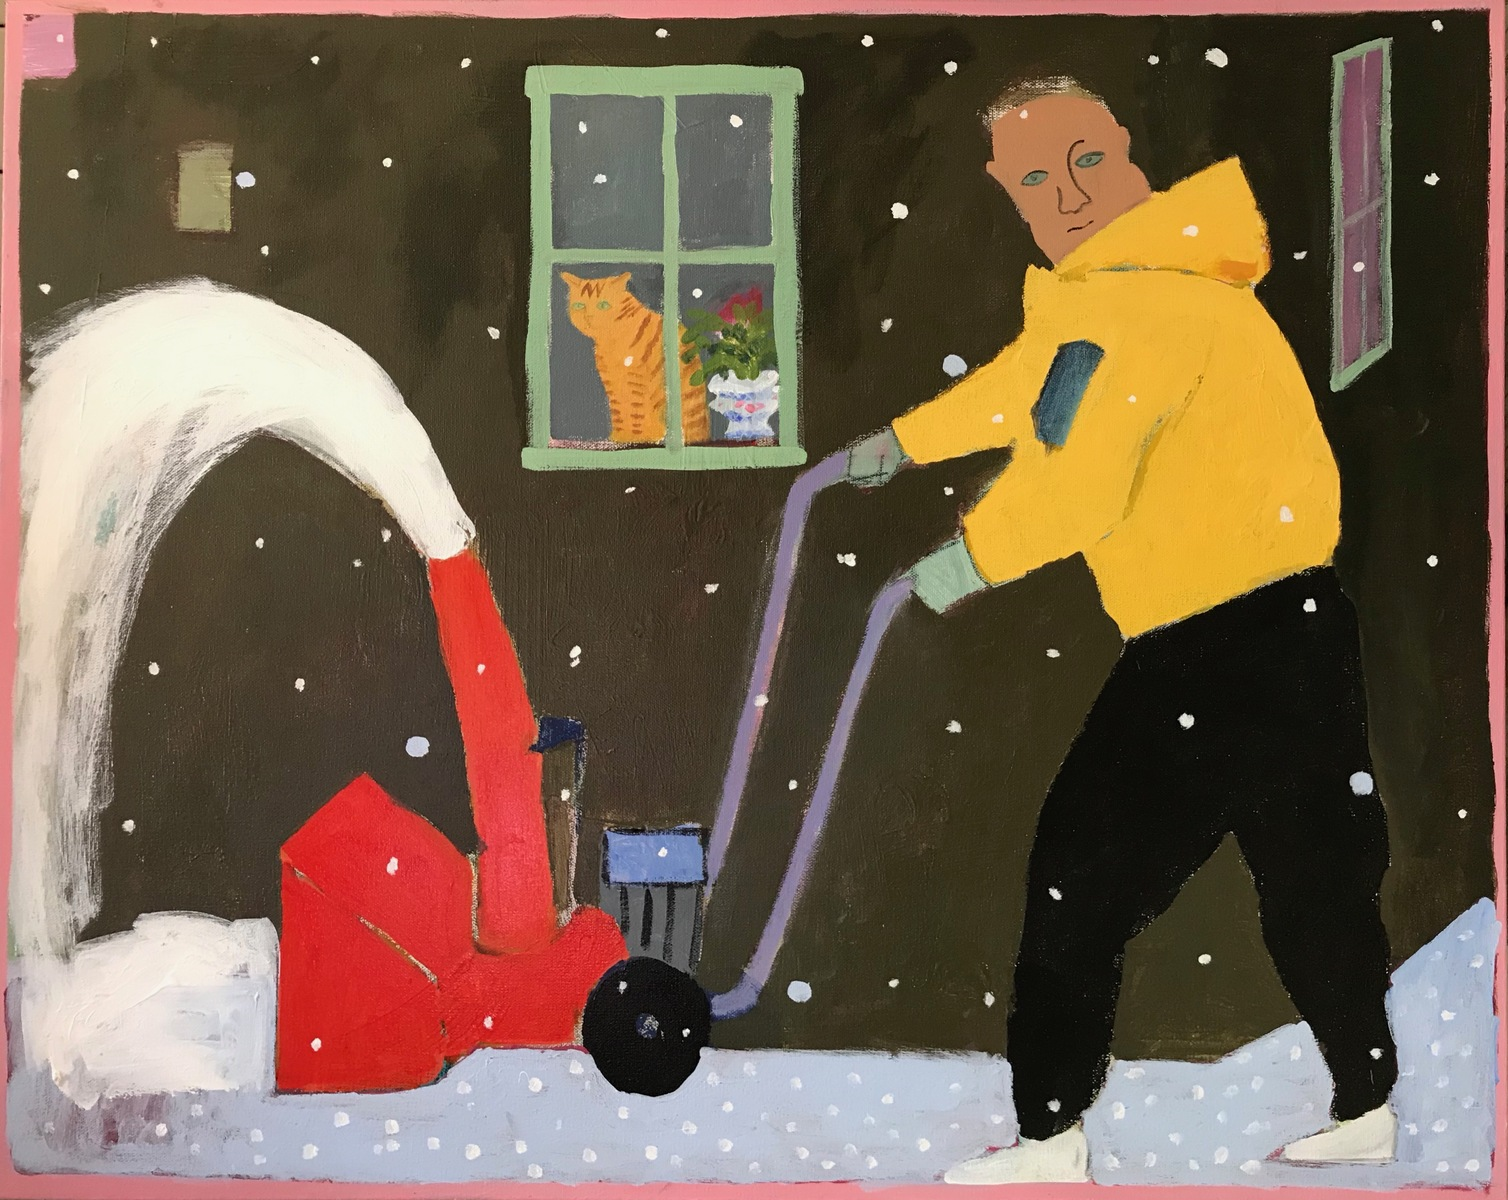 Painting 2019-2020 The Neighbor